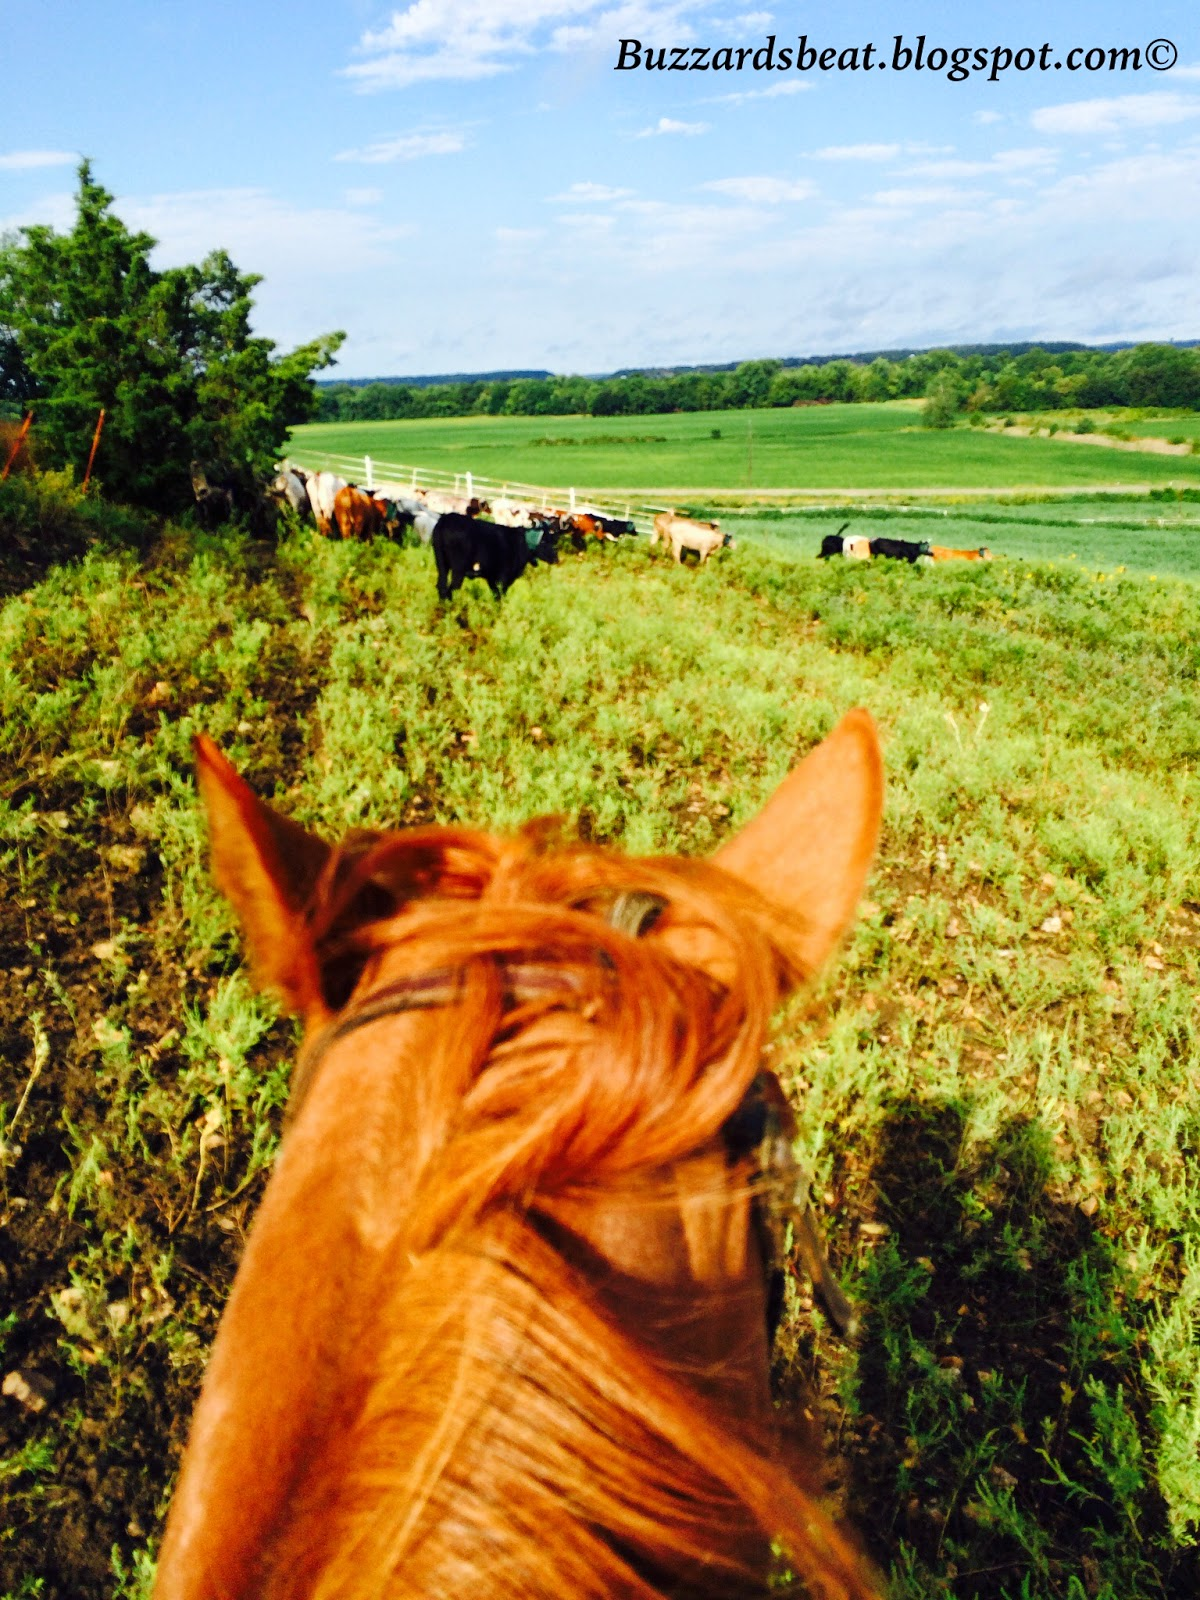 Gathering cattle from horseback on Labor Day